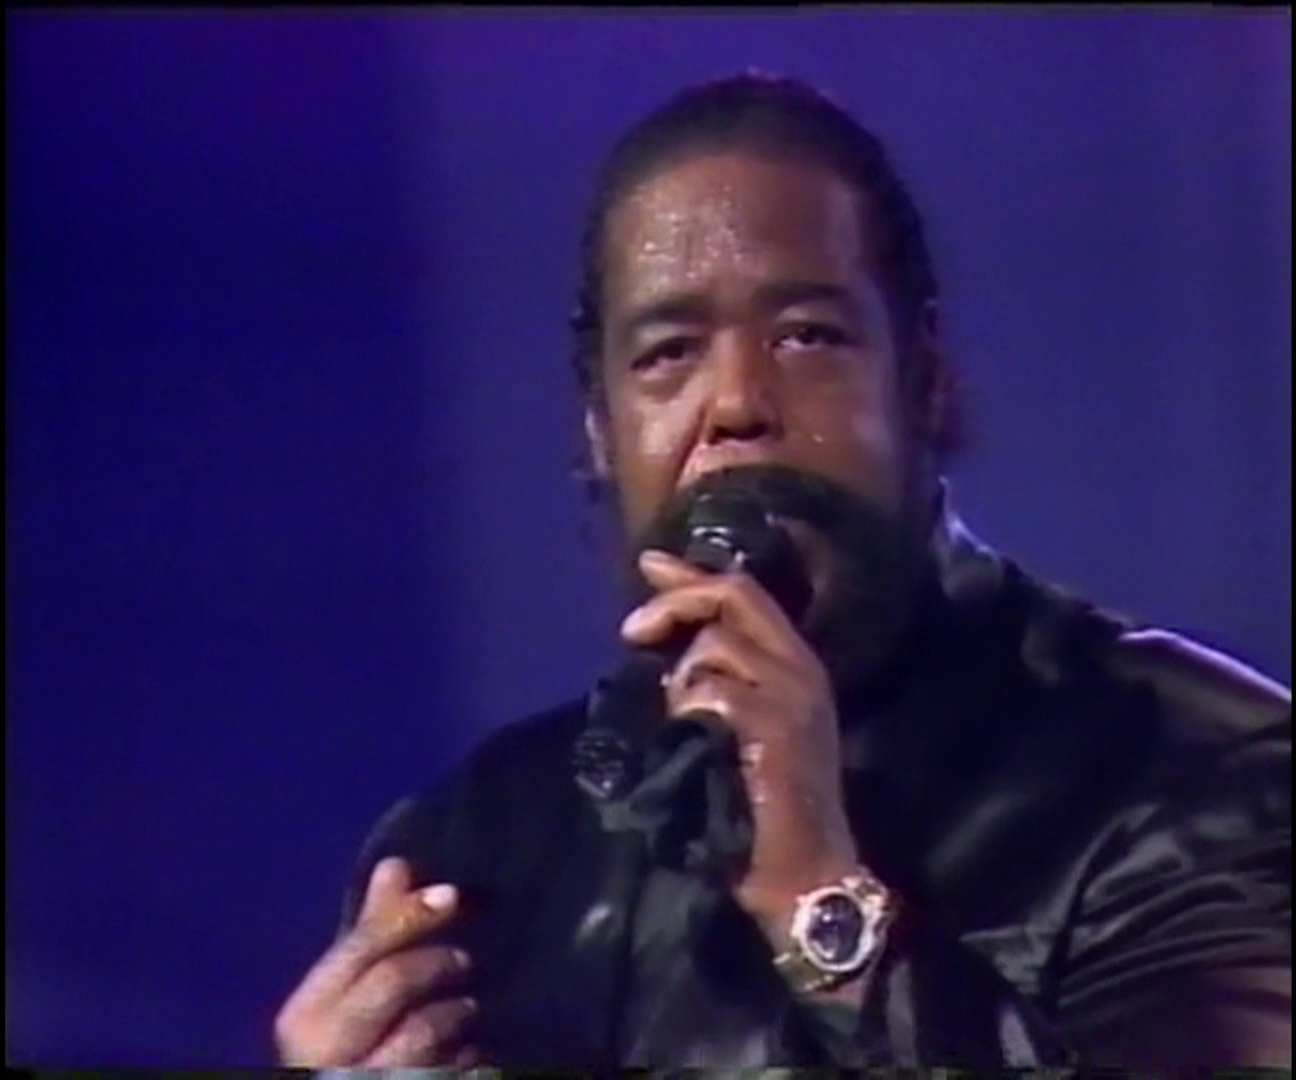 2004 Barry White - The Man And His Music featuring Love Unlimited (2012) [BDRip 1080p] 9